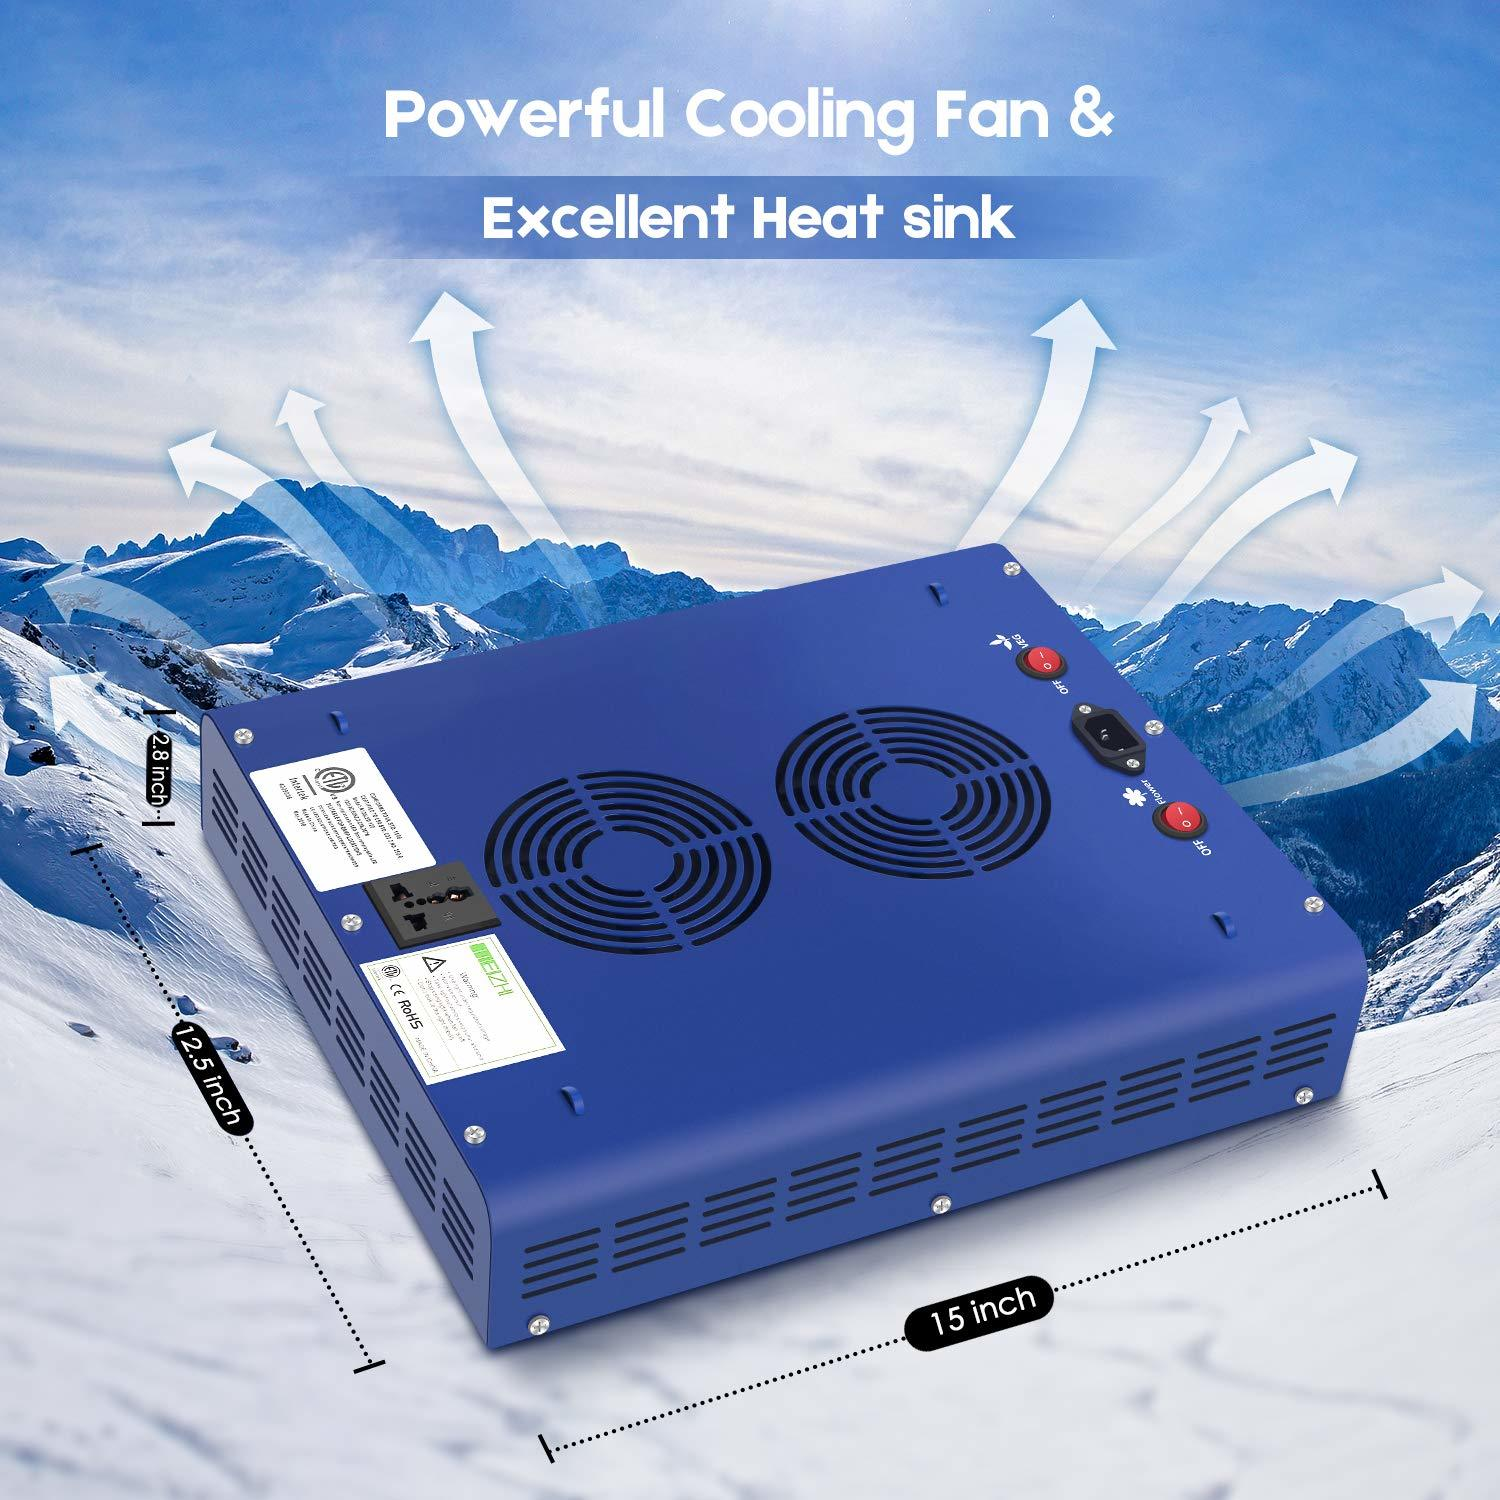 Meizhi Cooling System that well balance inside temperature